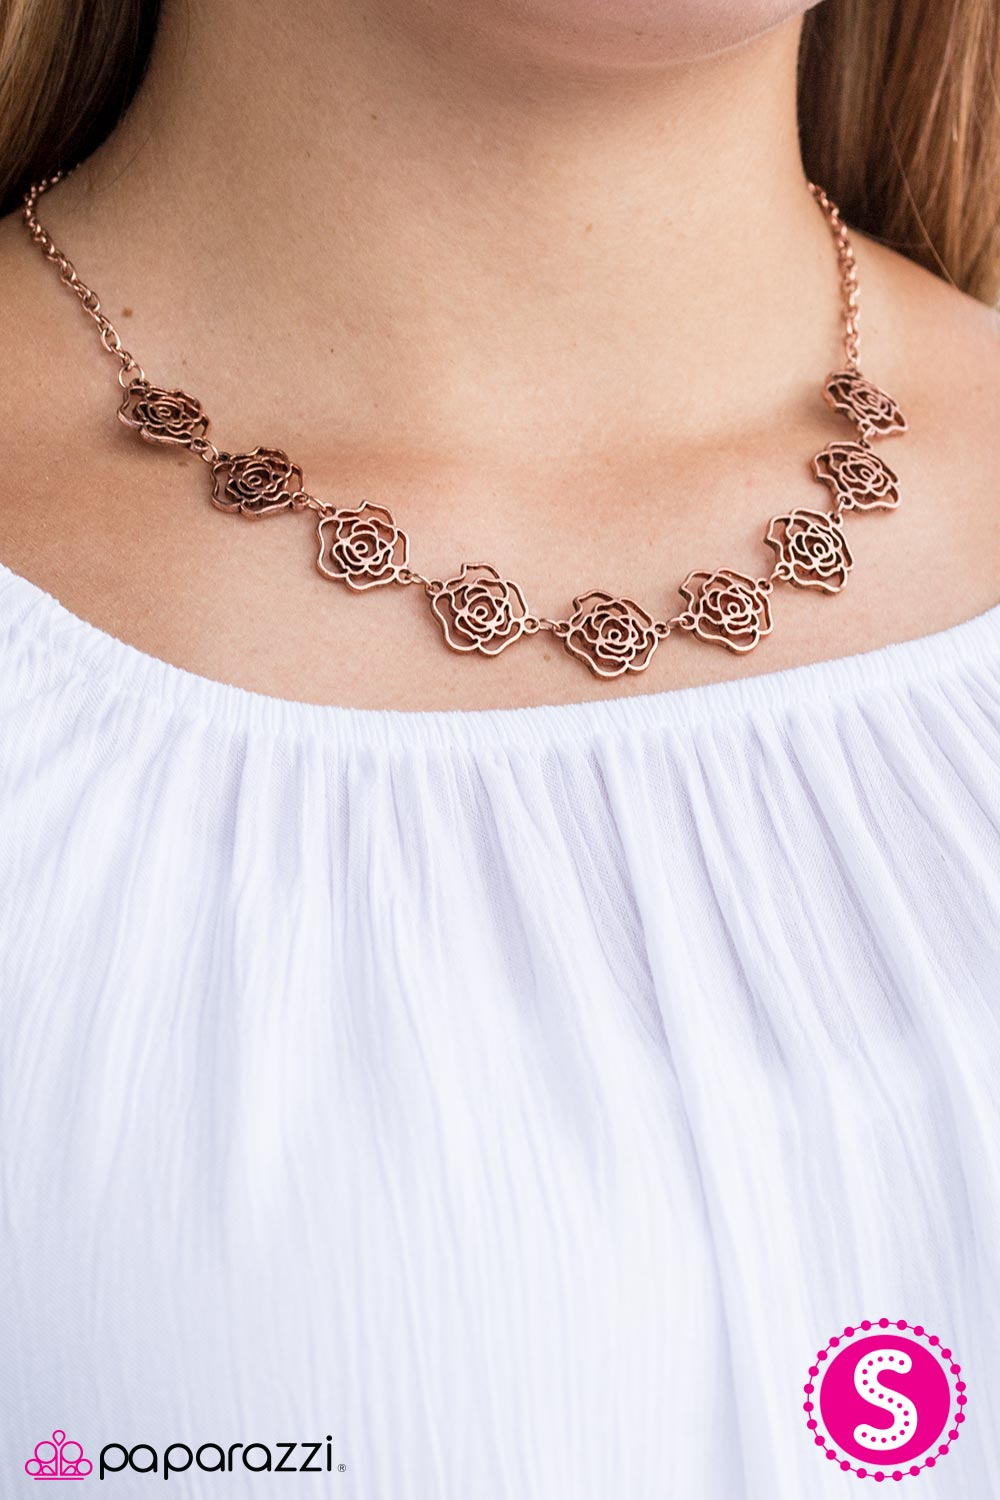 Brushed in a shiny copper finish, stenciled rosebuds link below the collar in a vintage inspired fashion. Features an adjustable snap closure.  Sold as one individual necklace. Includes one pair of matching earrings. Always nickel and lead free.